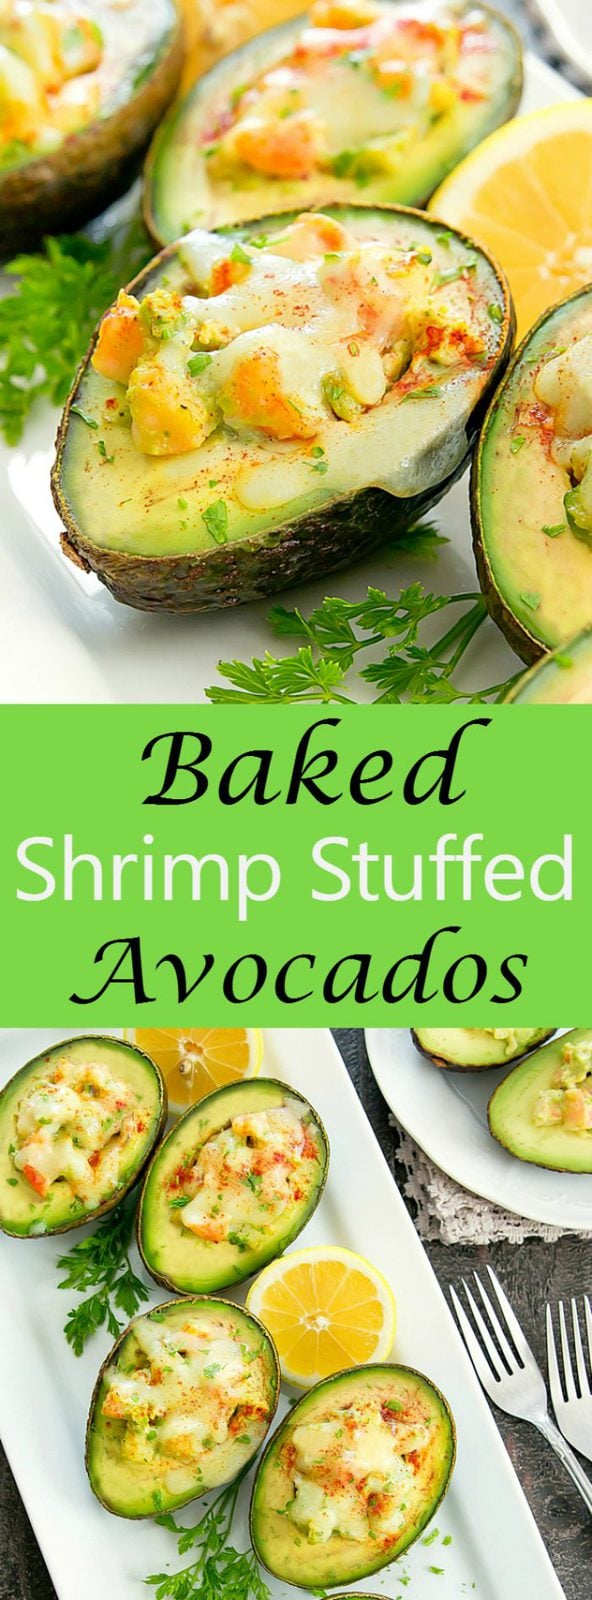 Baked Shrimp Stuffed Avocados. Ready in less than 30 minutes.